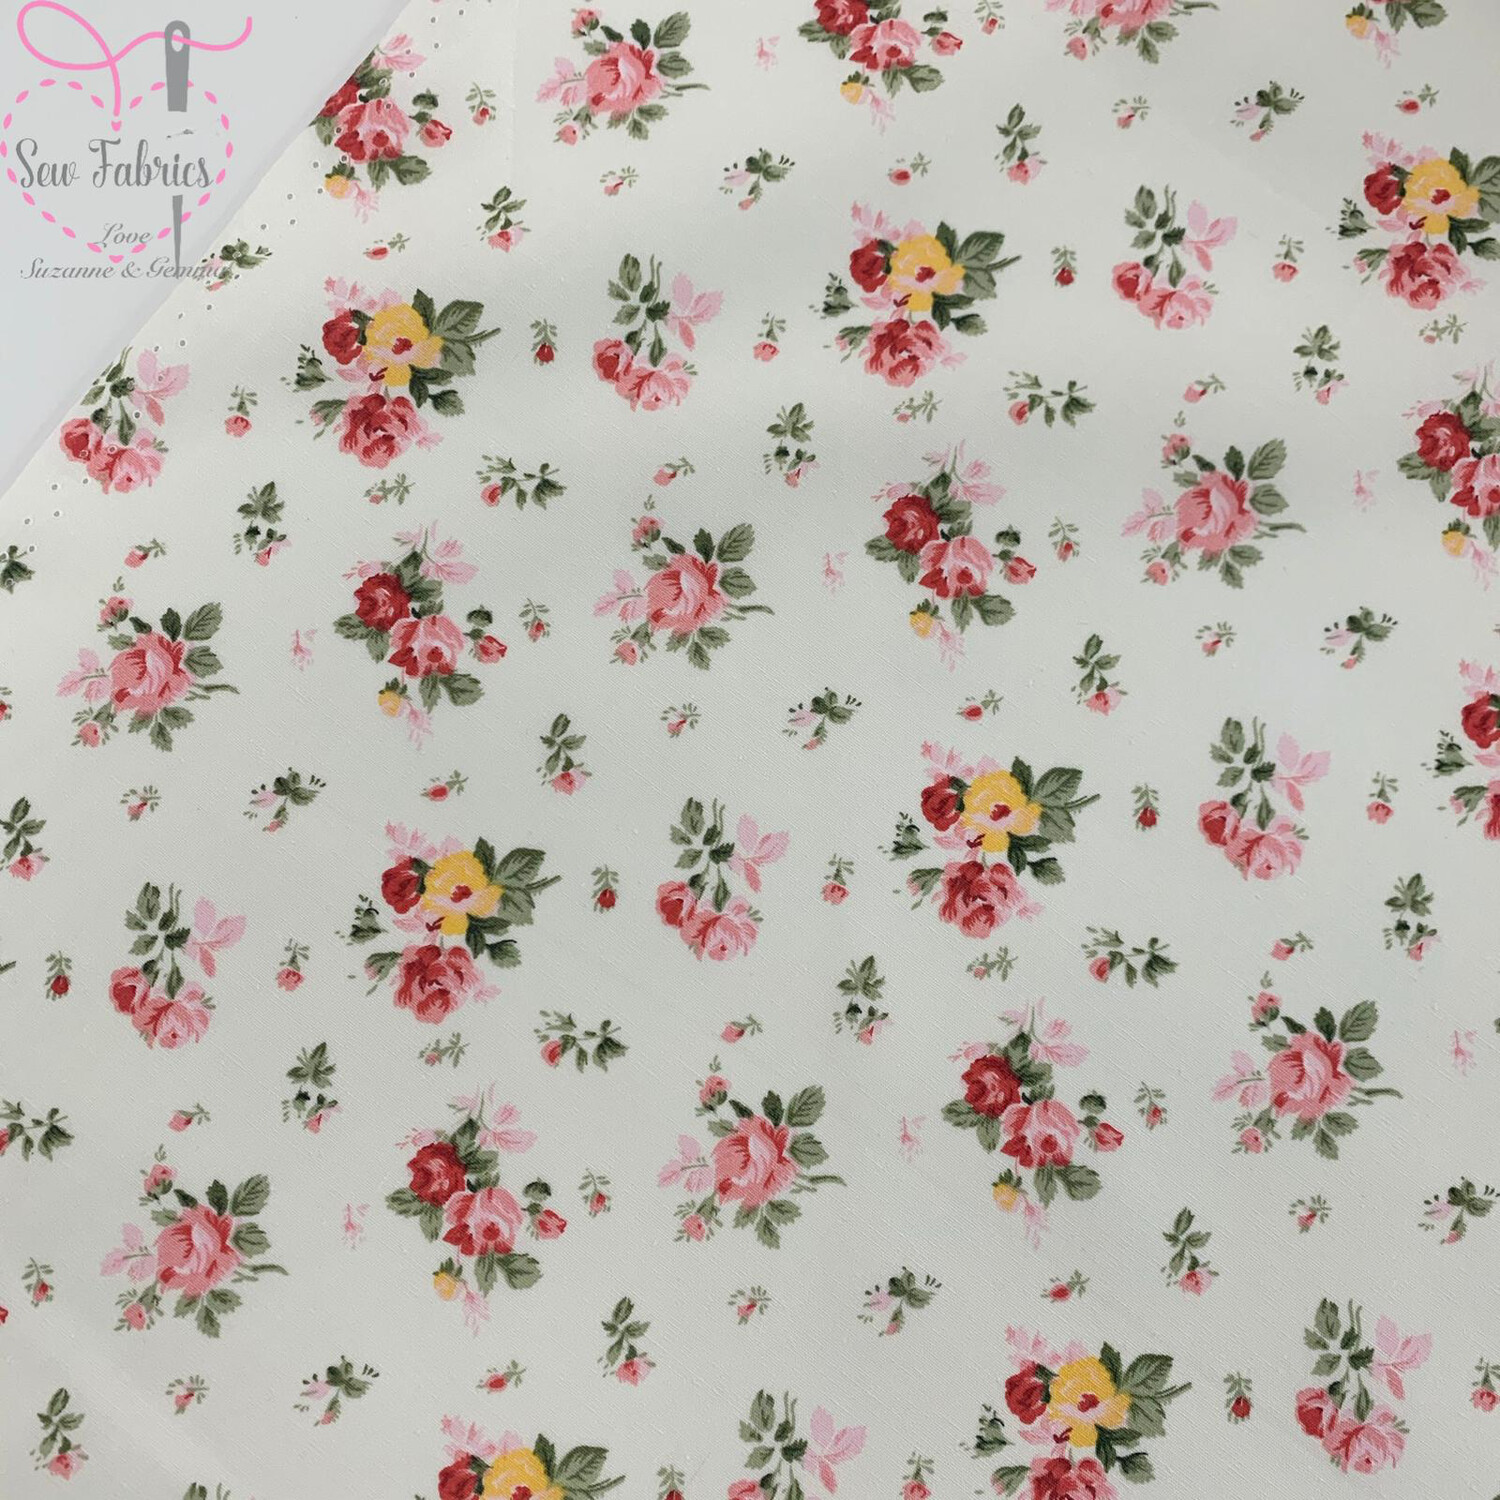 Rose & Hubble Ivory Dainty Bouquet Floral Fabric 100% Cotton Poplin